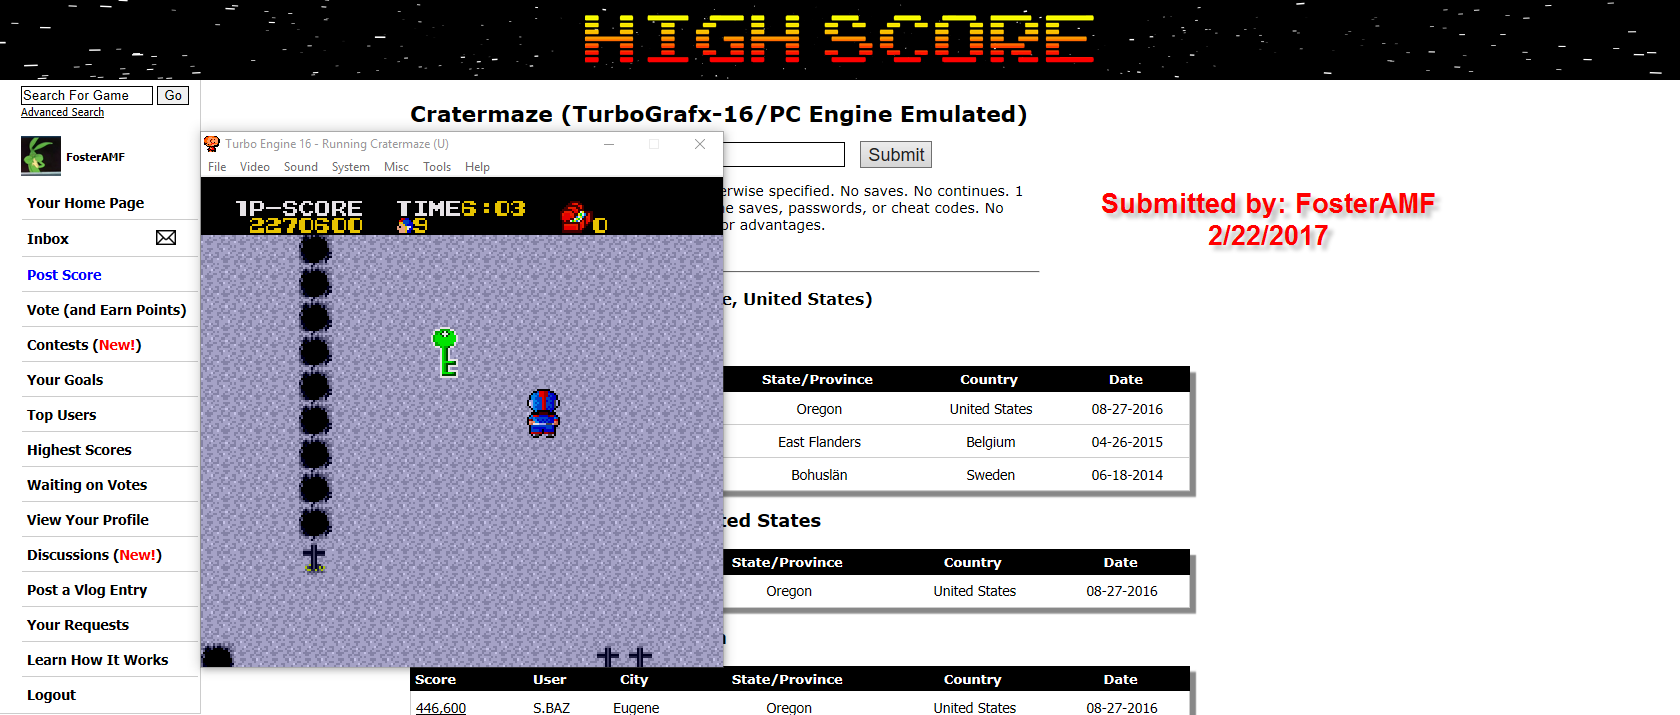 FosterAMF: Cratermaze (TurboGrafx-16/PC Engine Emulated) 2,300,600 points on 2017-02-22 20:40:43